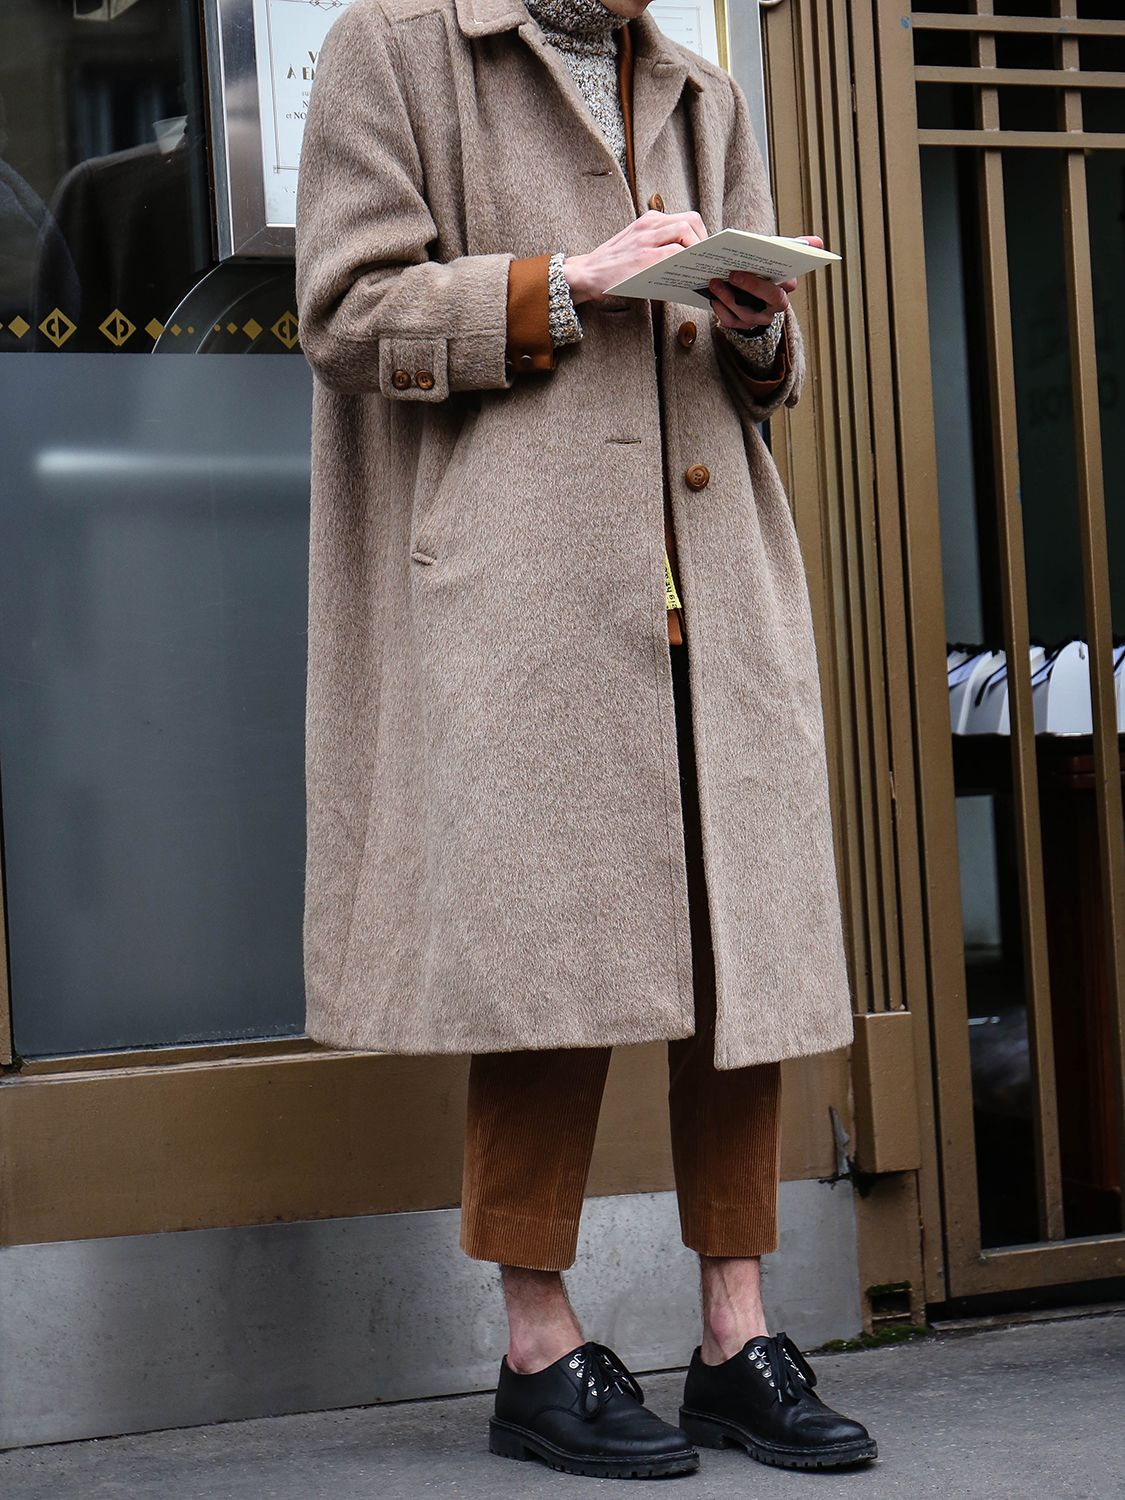 Men's outfit idea for 2021 with neutral camel coat, utility jacket, neutral lightweight rollneck jumper, black oxford / derby shoes. Suitable for winter.